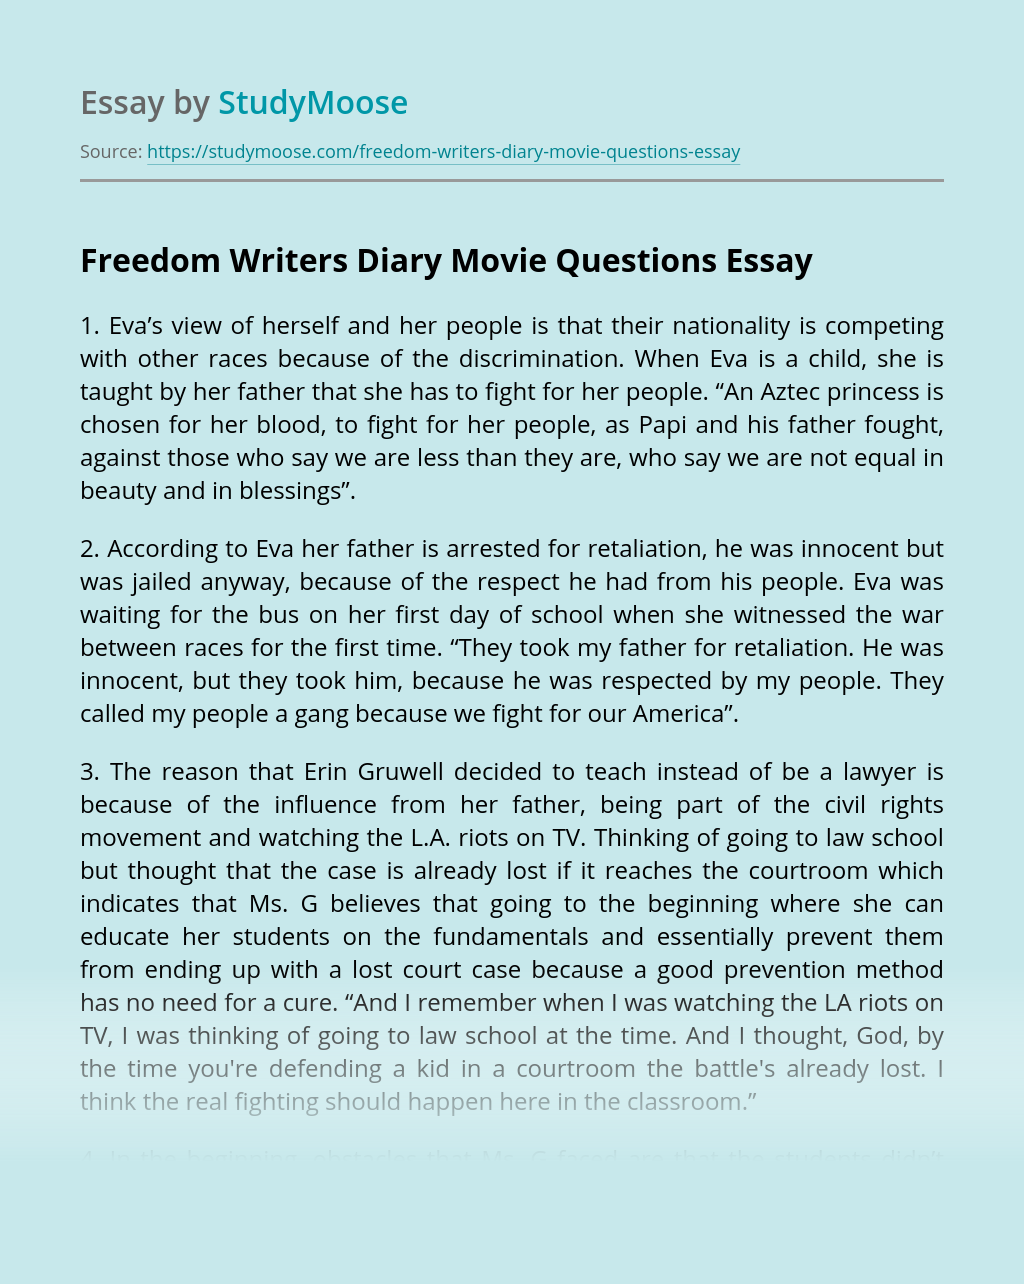 Freedom Writers Diary Movie Questions